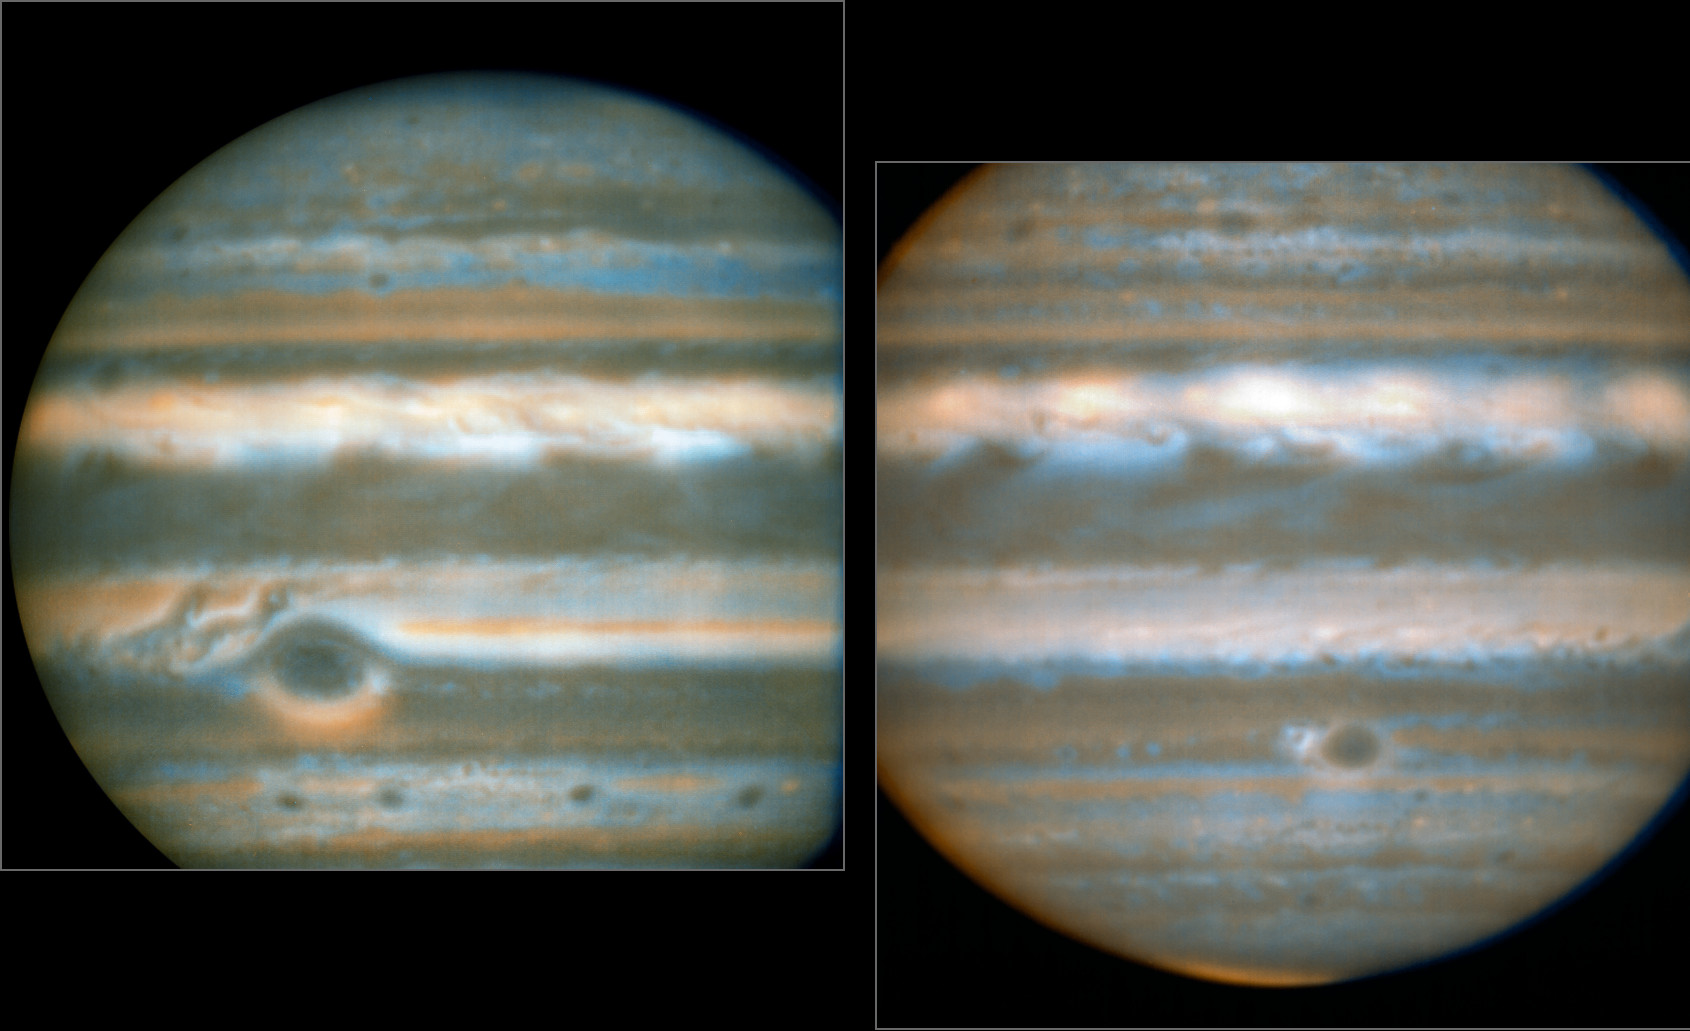 False colour images generated from VLT observations in February2016 (left) and March2016 (right), showing two different faces of Jupiter. The bluer areas are cold and cloud-free, the orangey areas are warm and cloudy, more colourless bright regions are warm and cloud-free, and dark regions are cold and cloudy (such as the Great Red Spot and the prominent ovals). The wave pattern over the North Equatorial Band shows up in orange. These views were created from VLT/VISIR infrared images. The orange images were obtained at 10.7micrometres wavelength and highlight the different temperatures and presence of ammonia. The blue images at 8.6micrometres highlight variations in cloud opacity. Image credit: ESO/L. Fletcher.